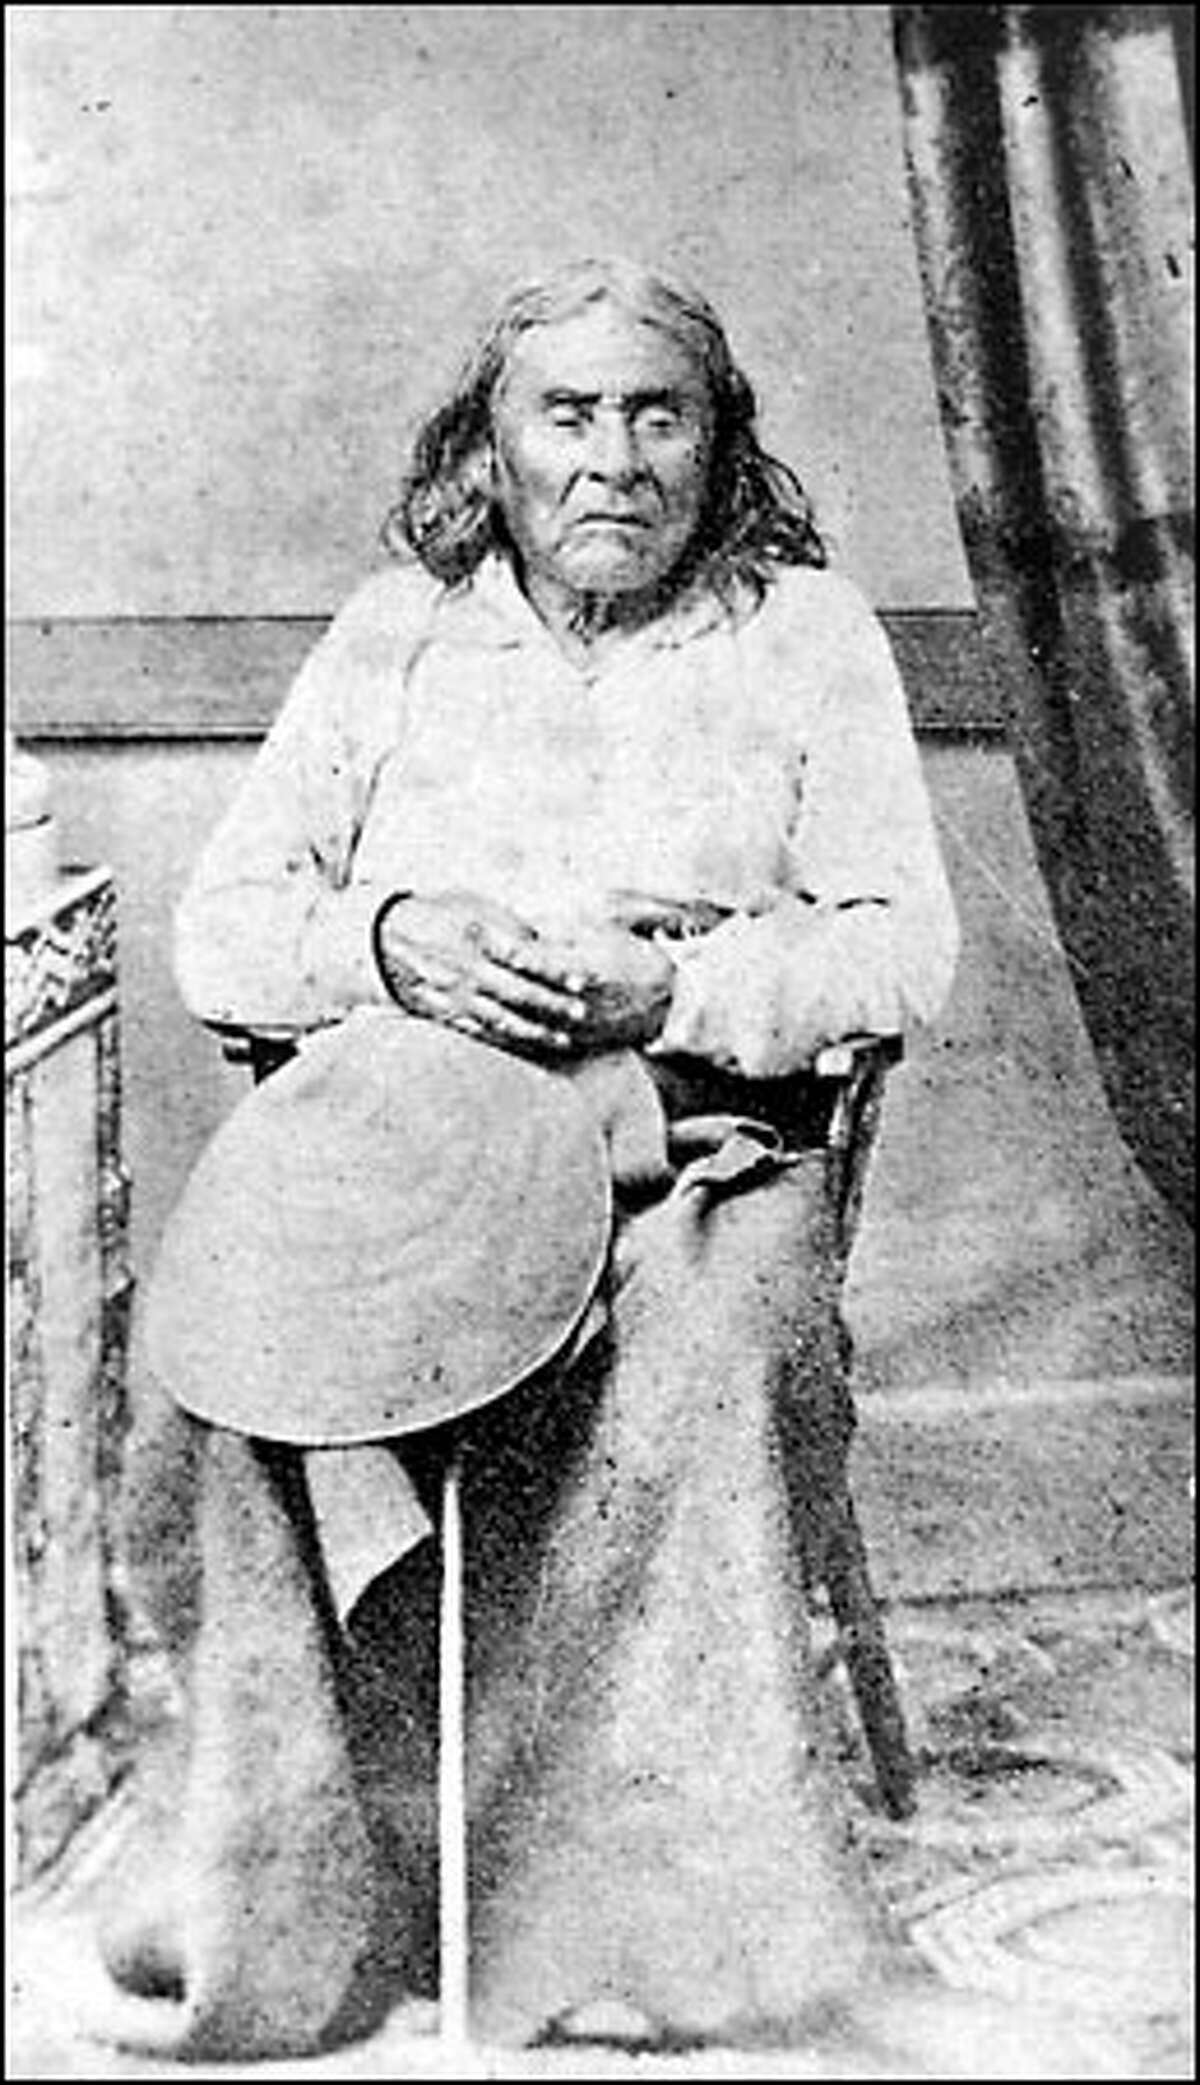 The only known photograph of Chief Seattle was taken in the 1860s as he neared his 80th year, a venerable leader respected for his peaceful ways.